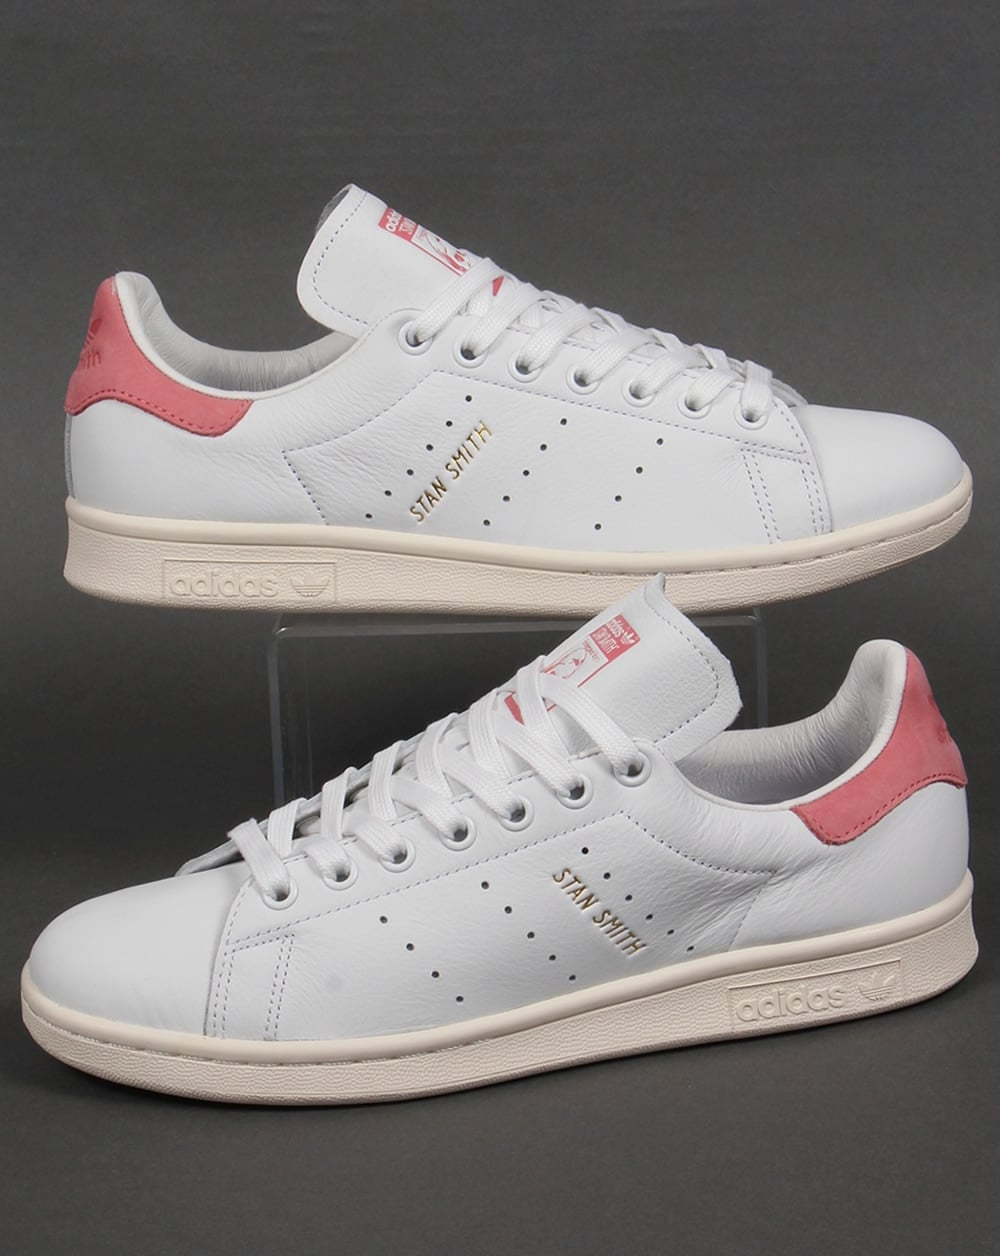 stan smith adidas 80s sneakers